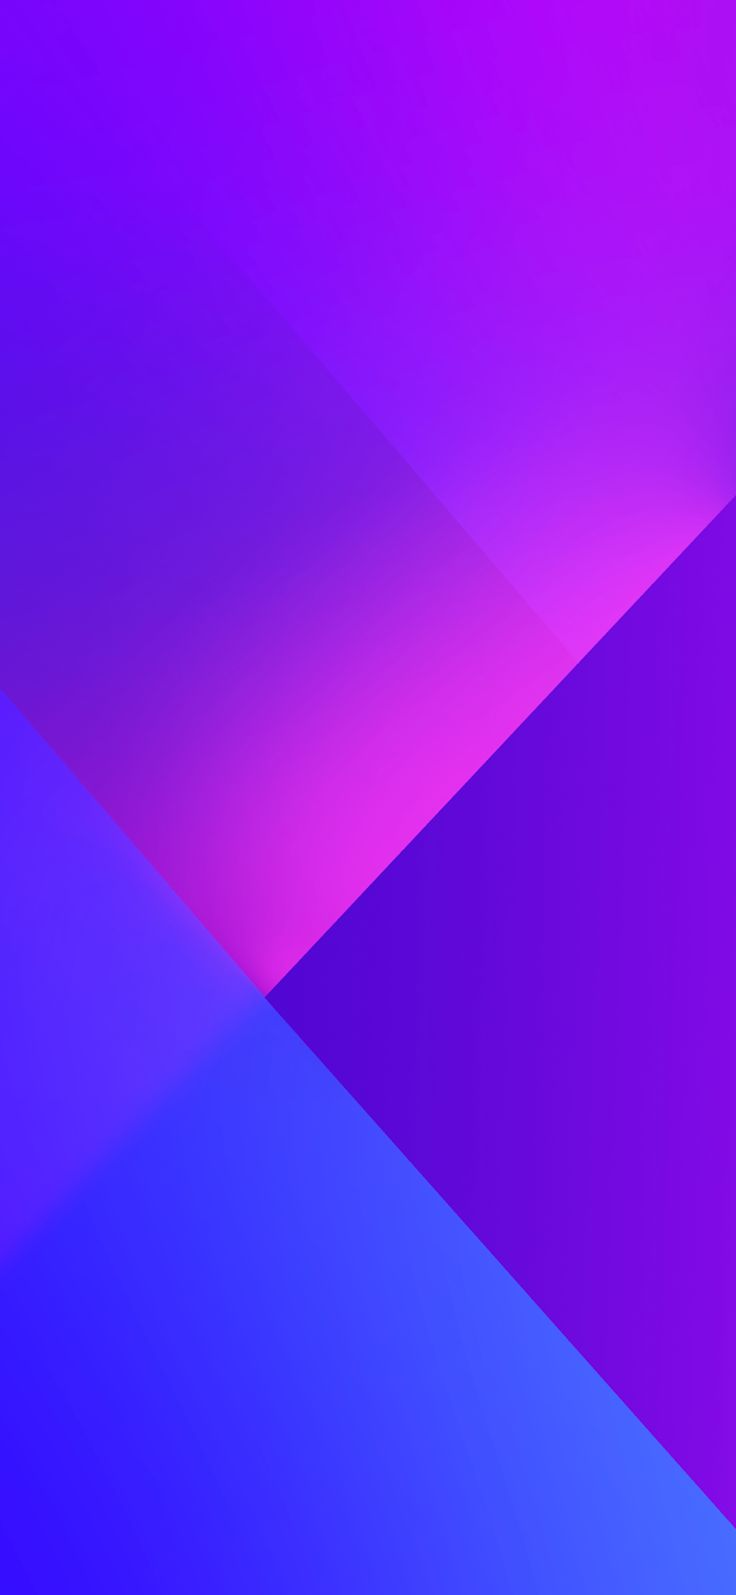 Vivo X23 Stock Wallpapers Hd phone wallpapers, Cool